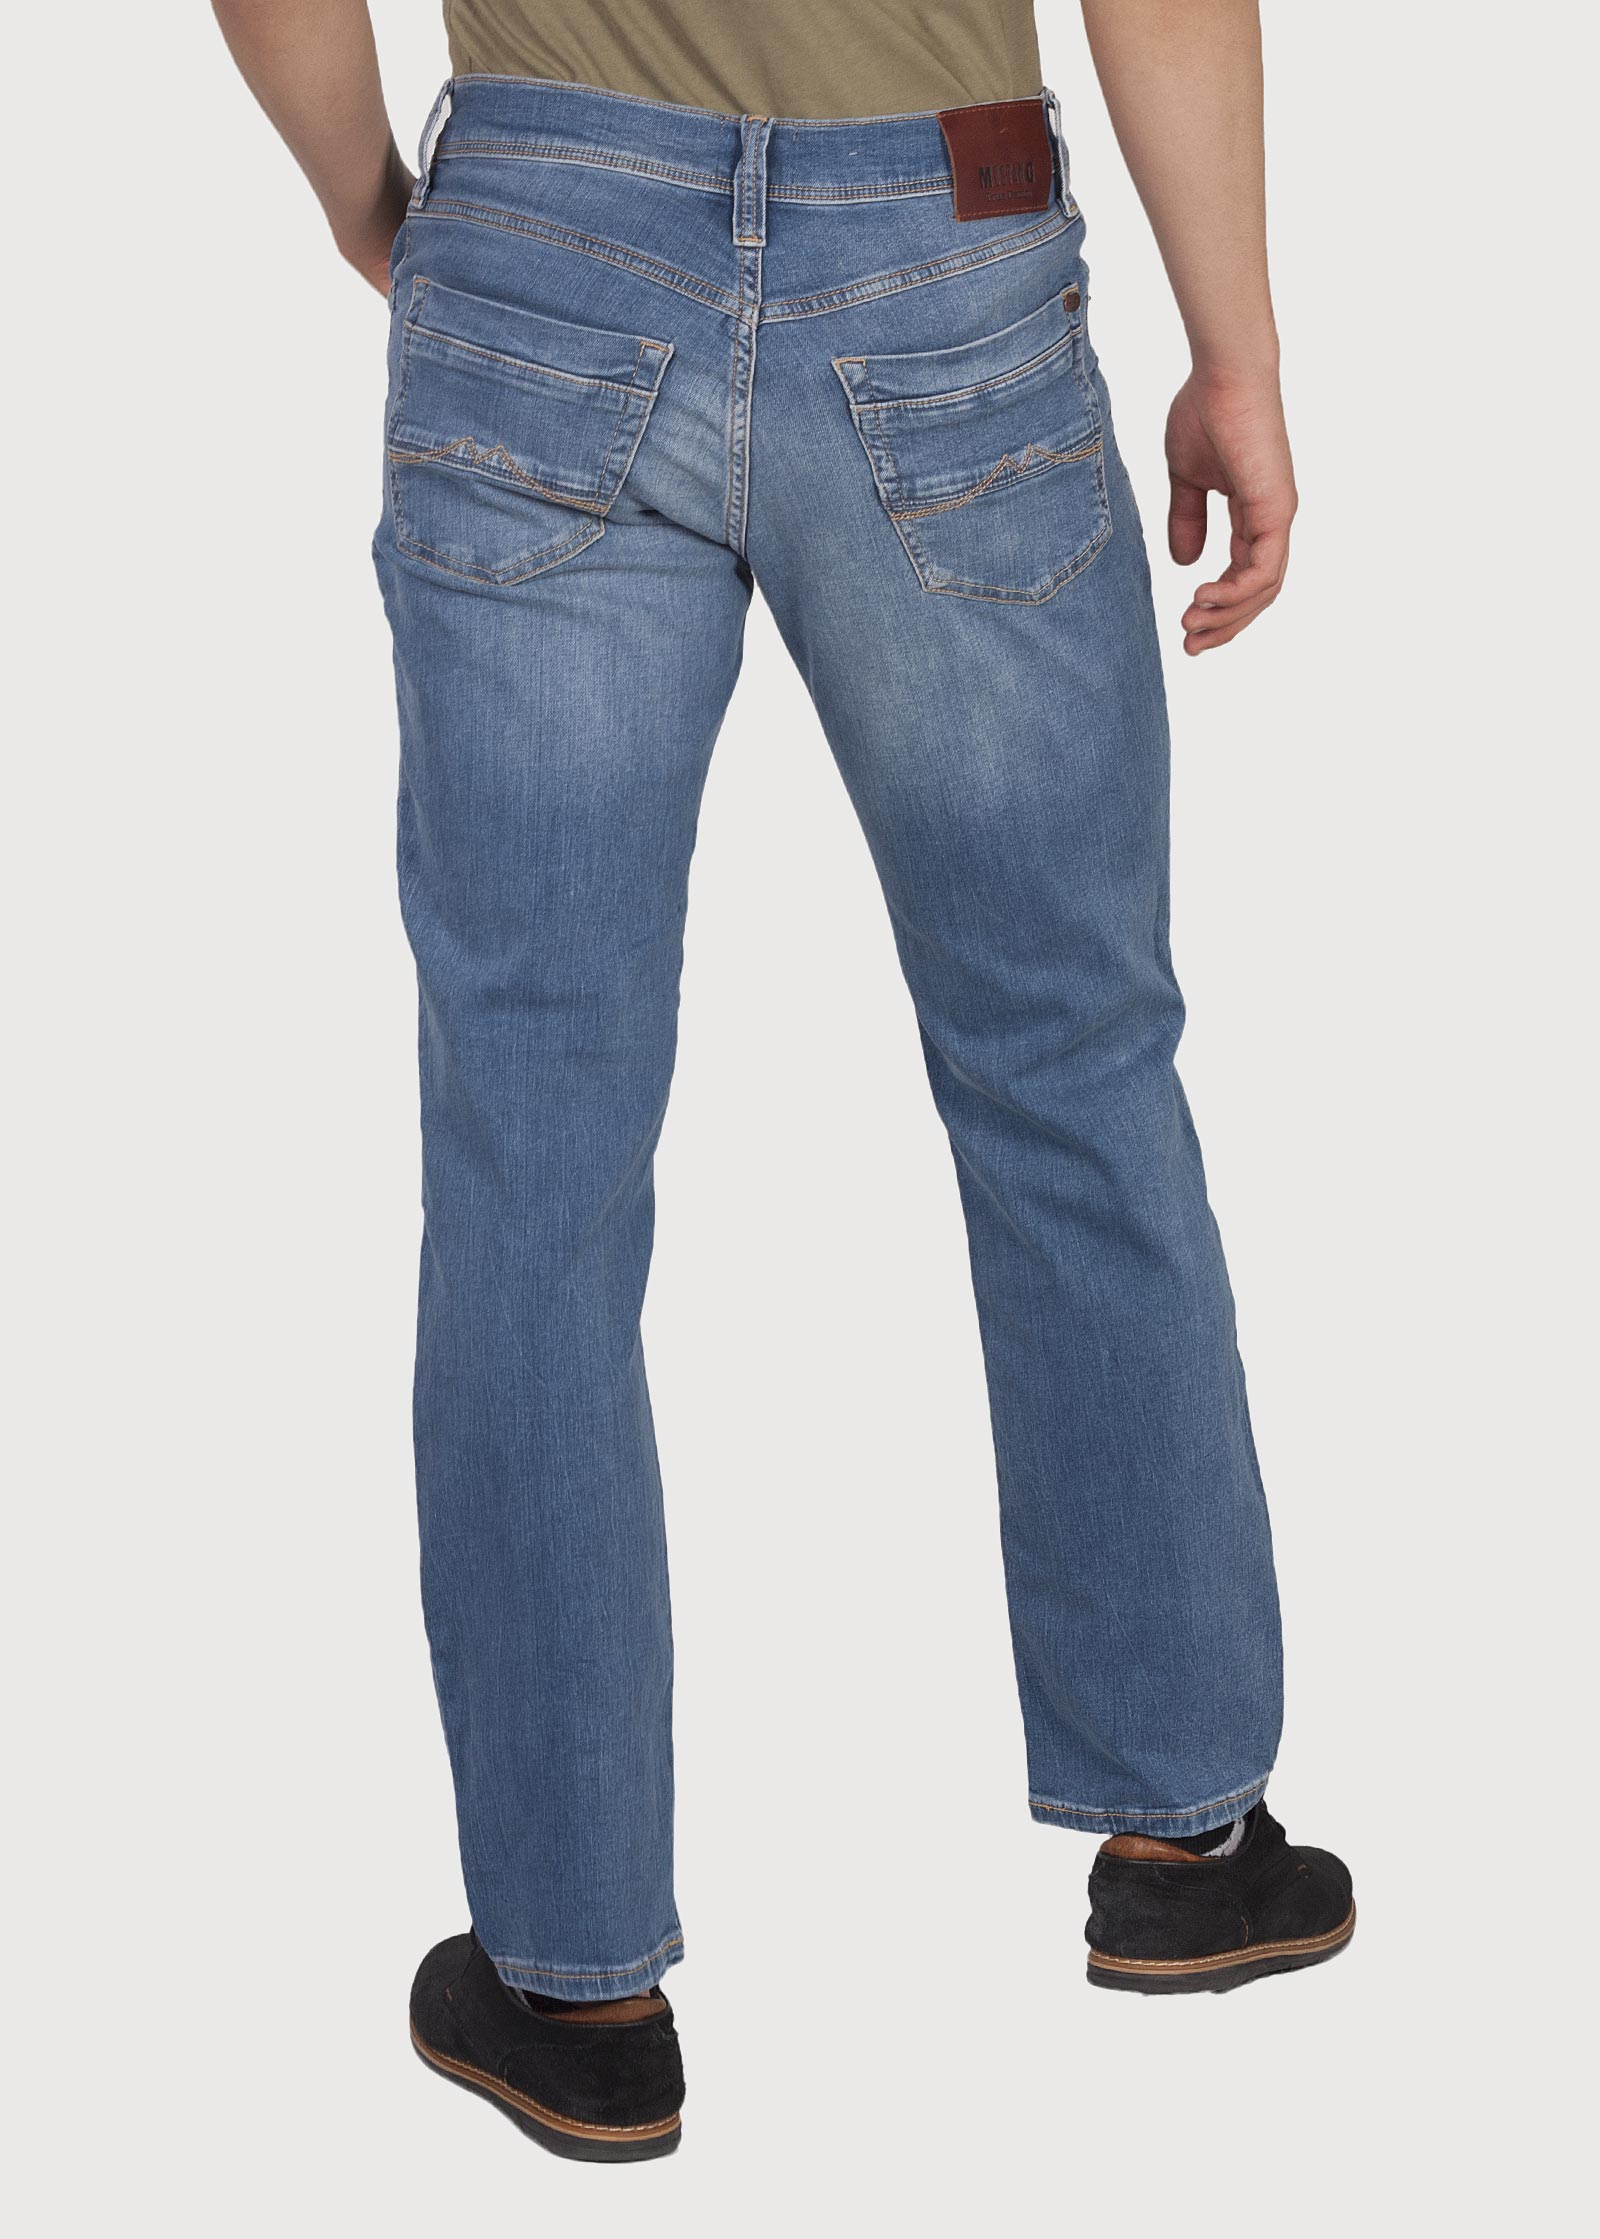 Mustang® Washington - Denim Blue (411) - elements